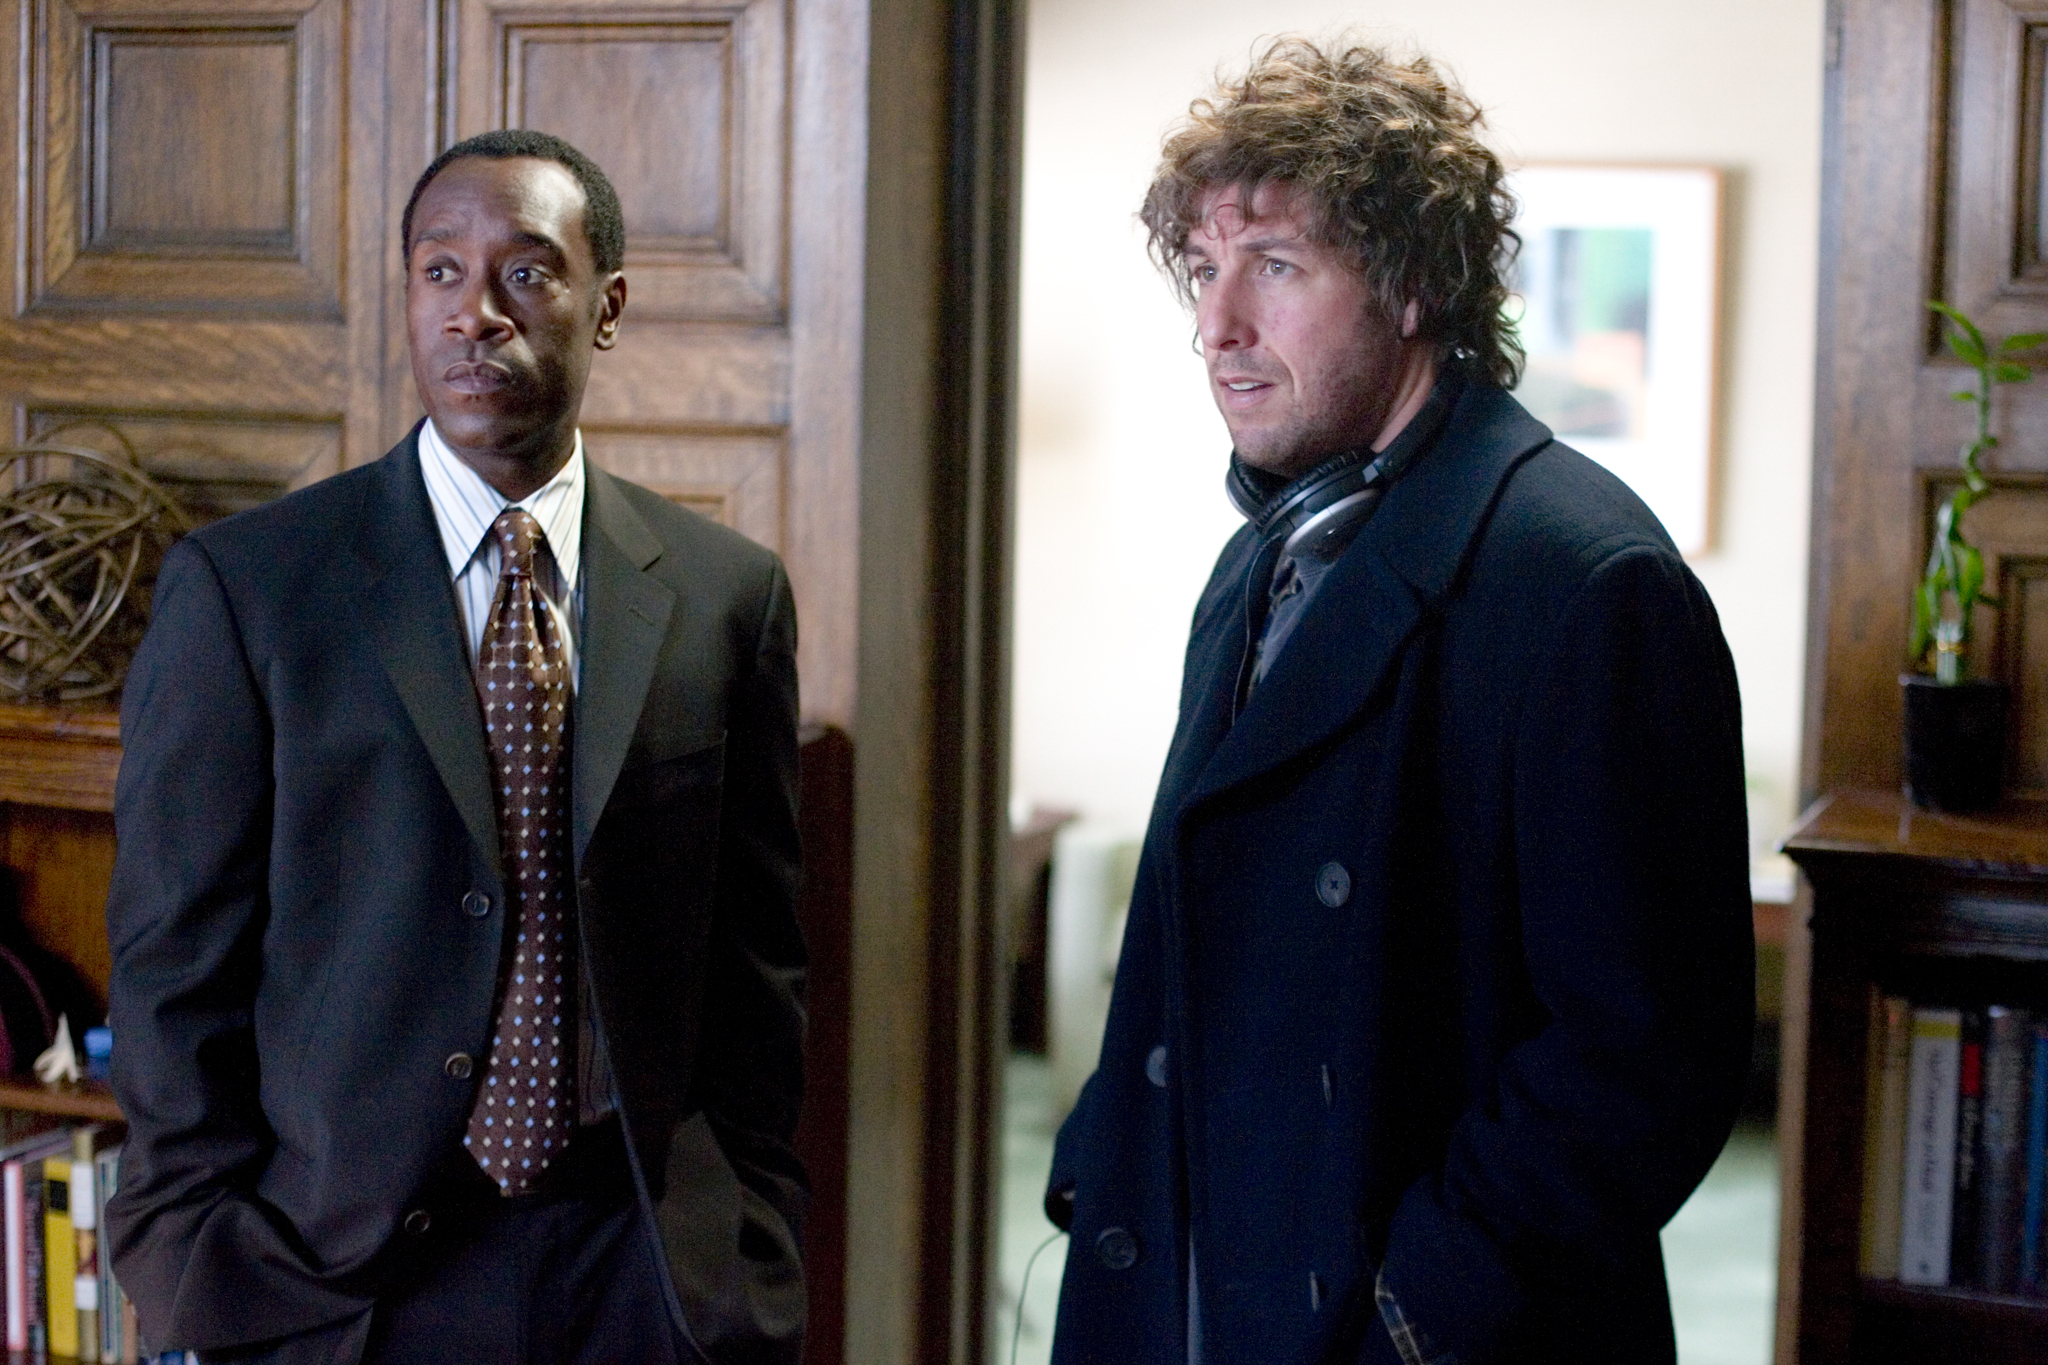 2. Reign Over Me (2004)